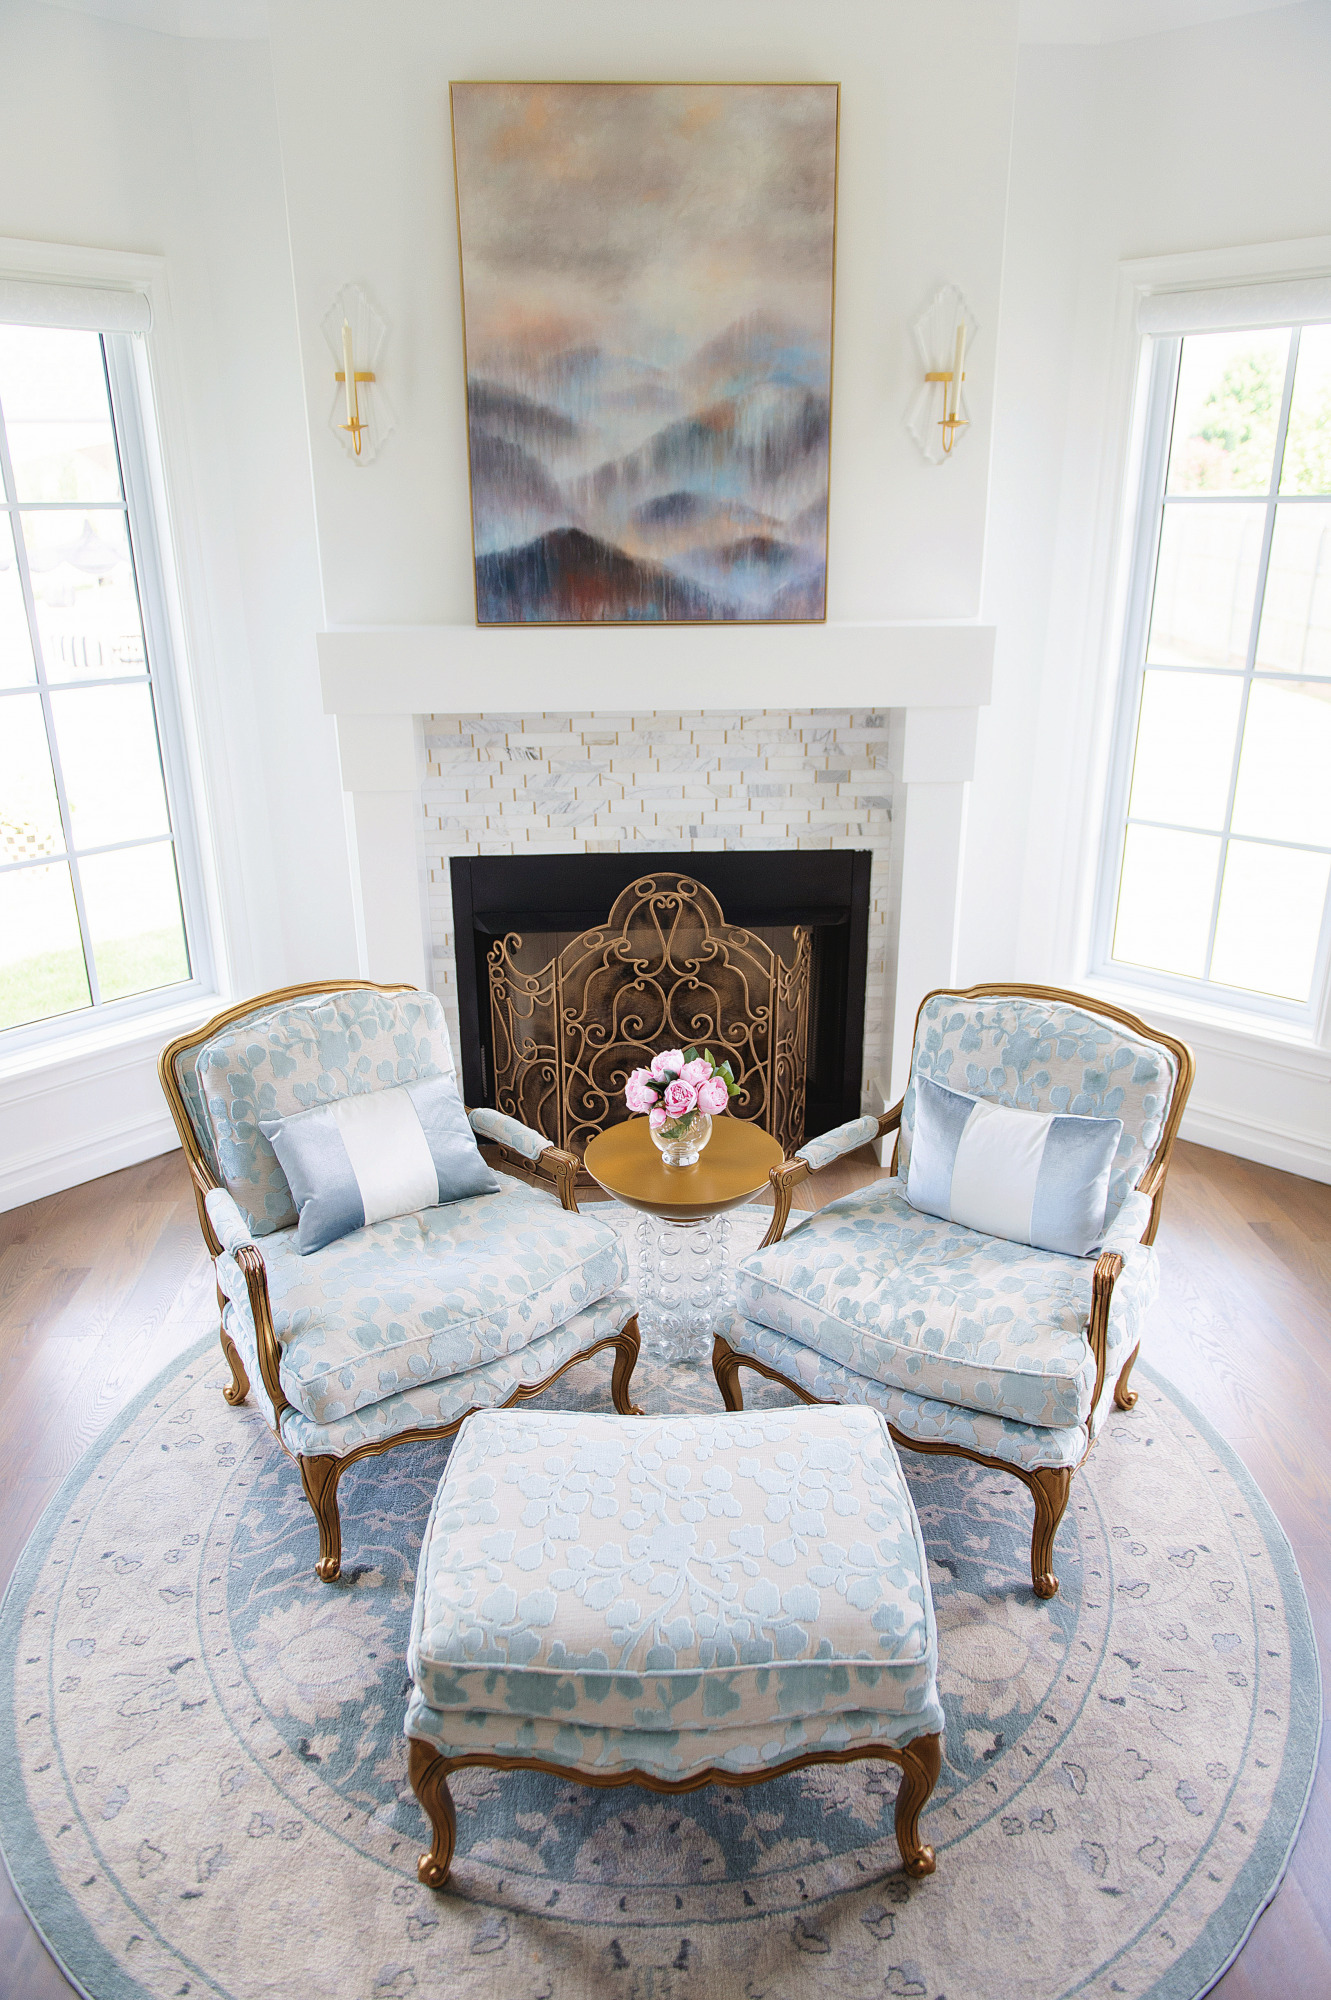 Blog Design by popular US lifestyle blog, The Sweetest Thing: image of a sitting nook with a blue and white print round rug, matching blue and cream arm chairs, and a fireplace with a gold grate.